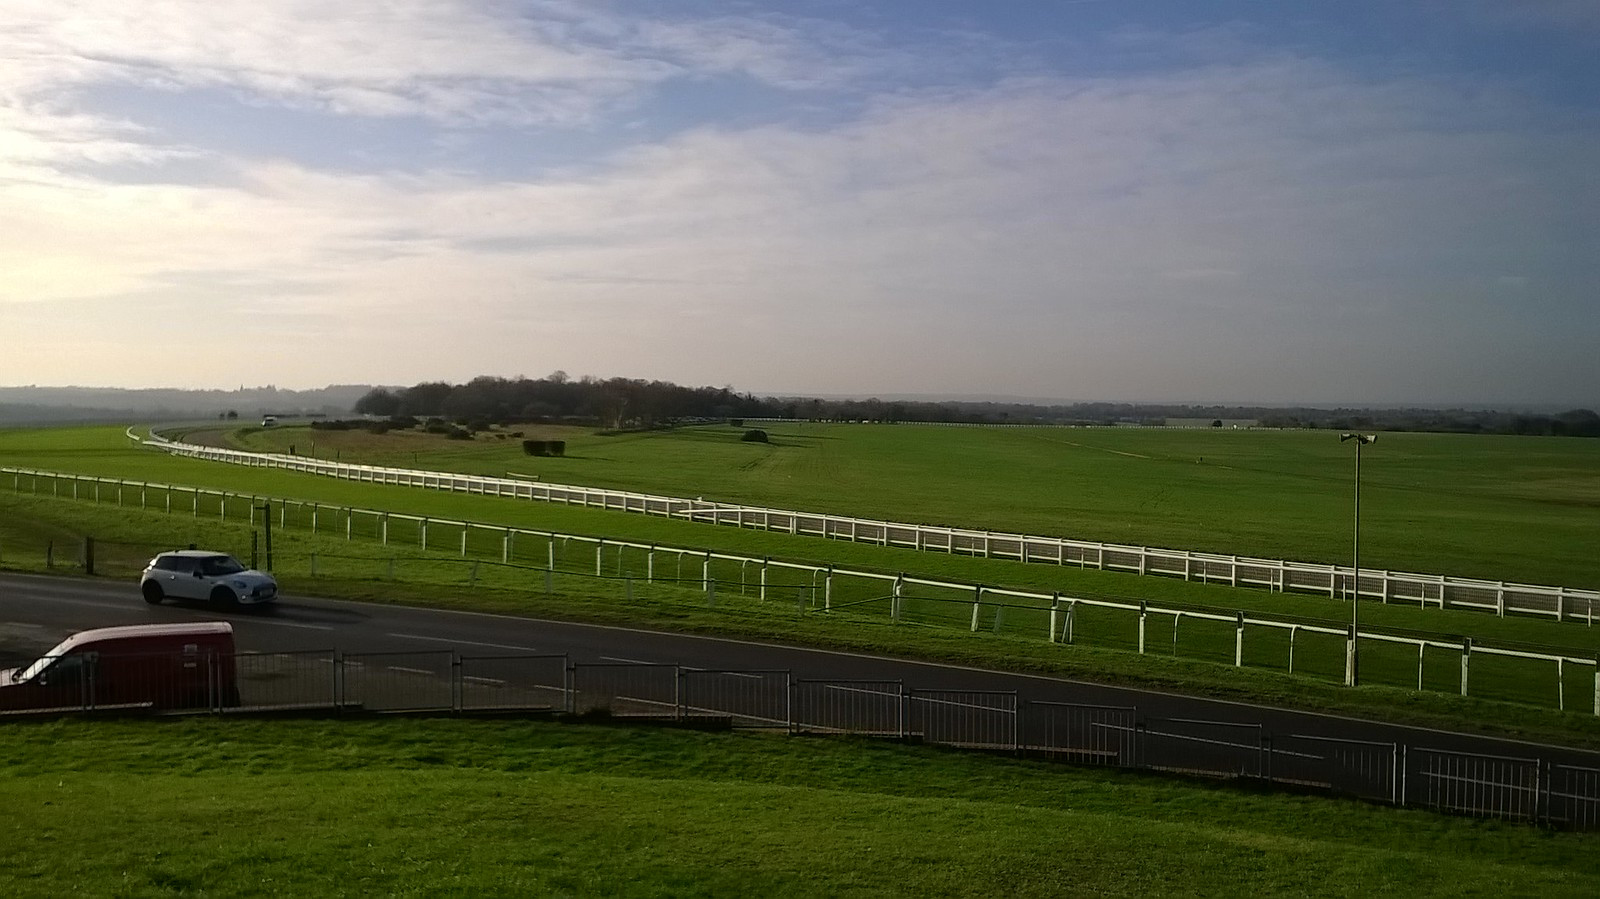 Epsom racecourse #2 from Tattenham Corner bank